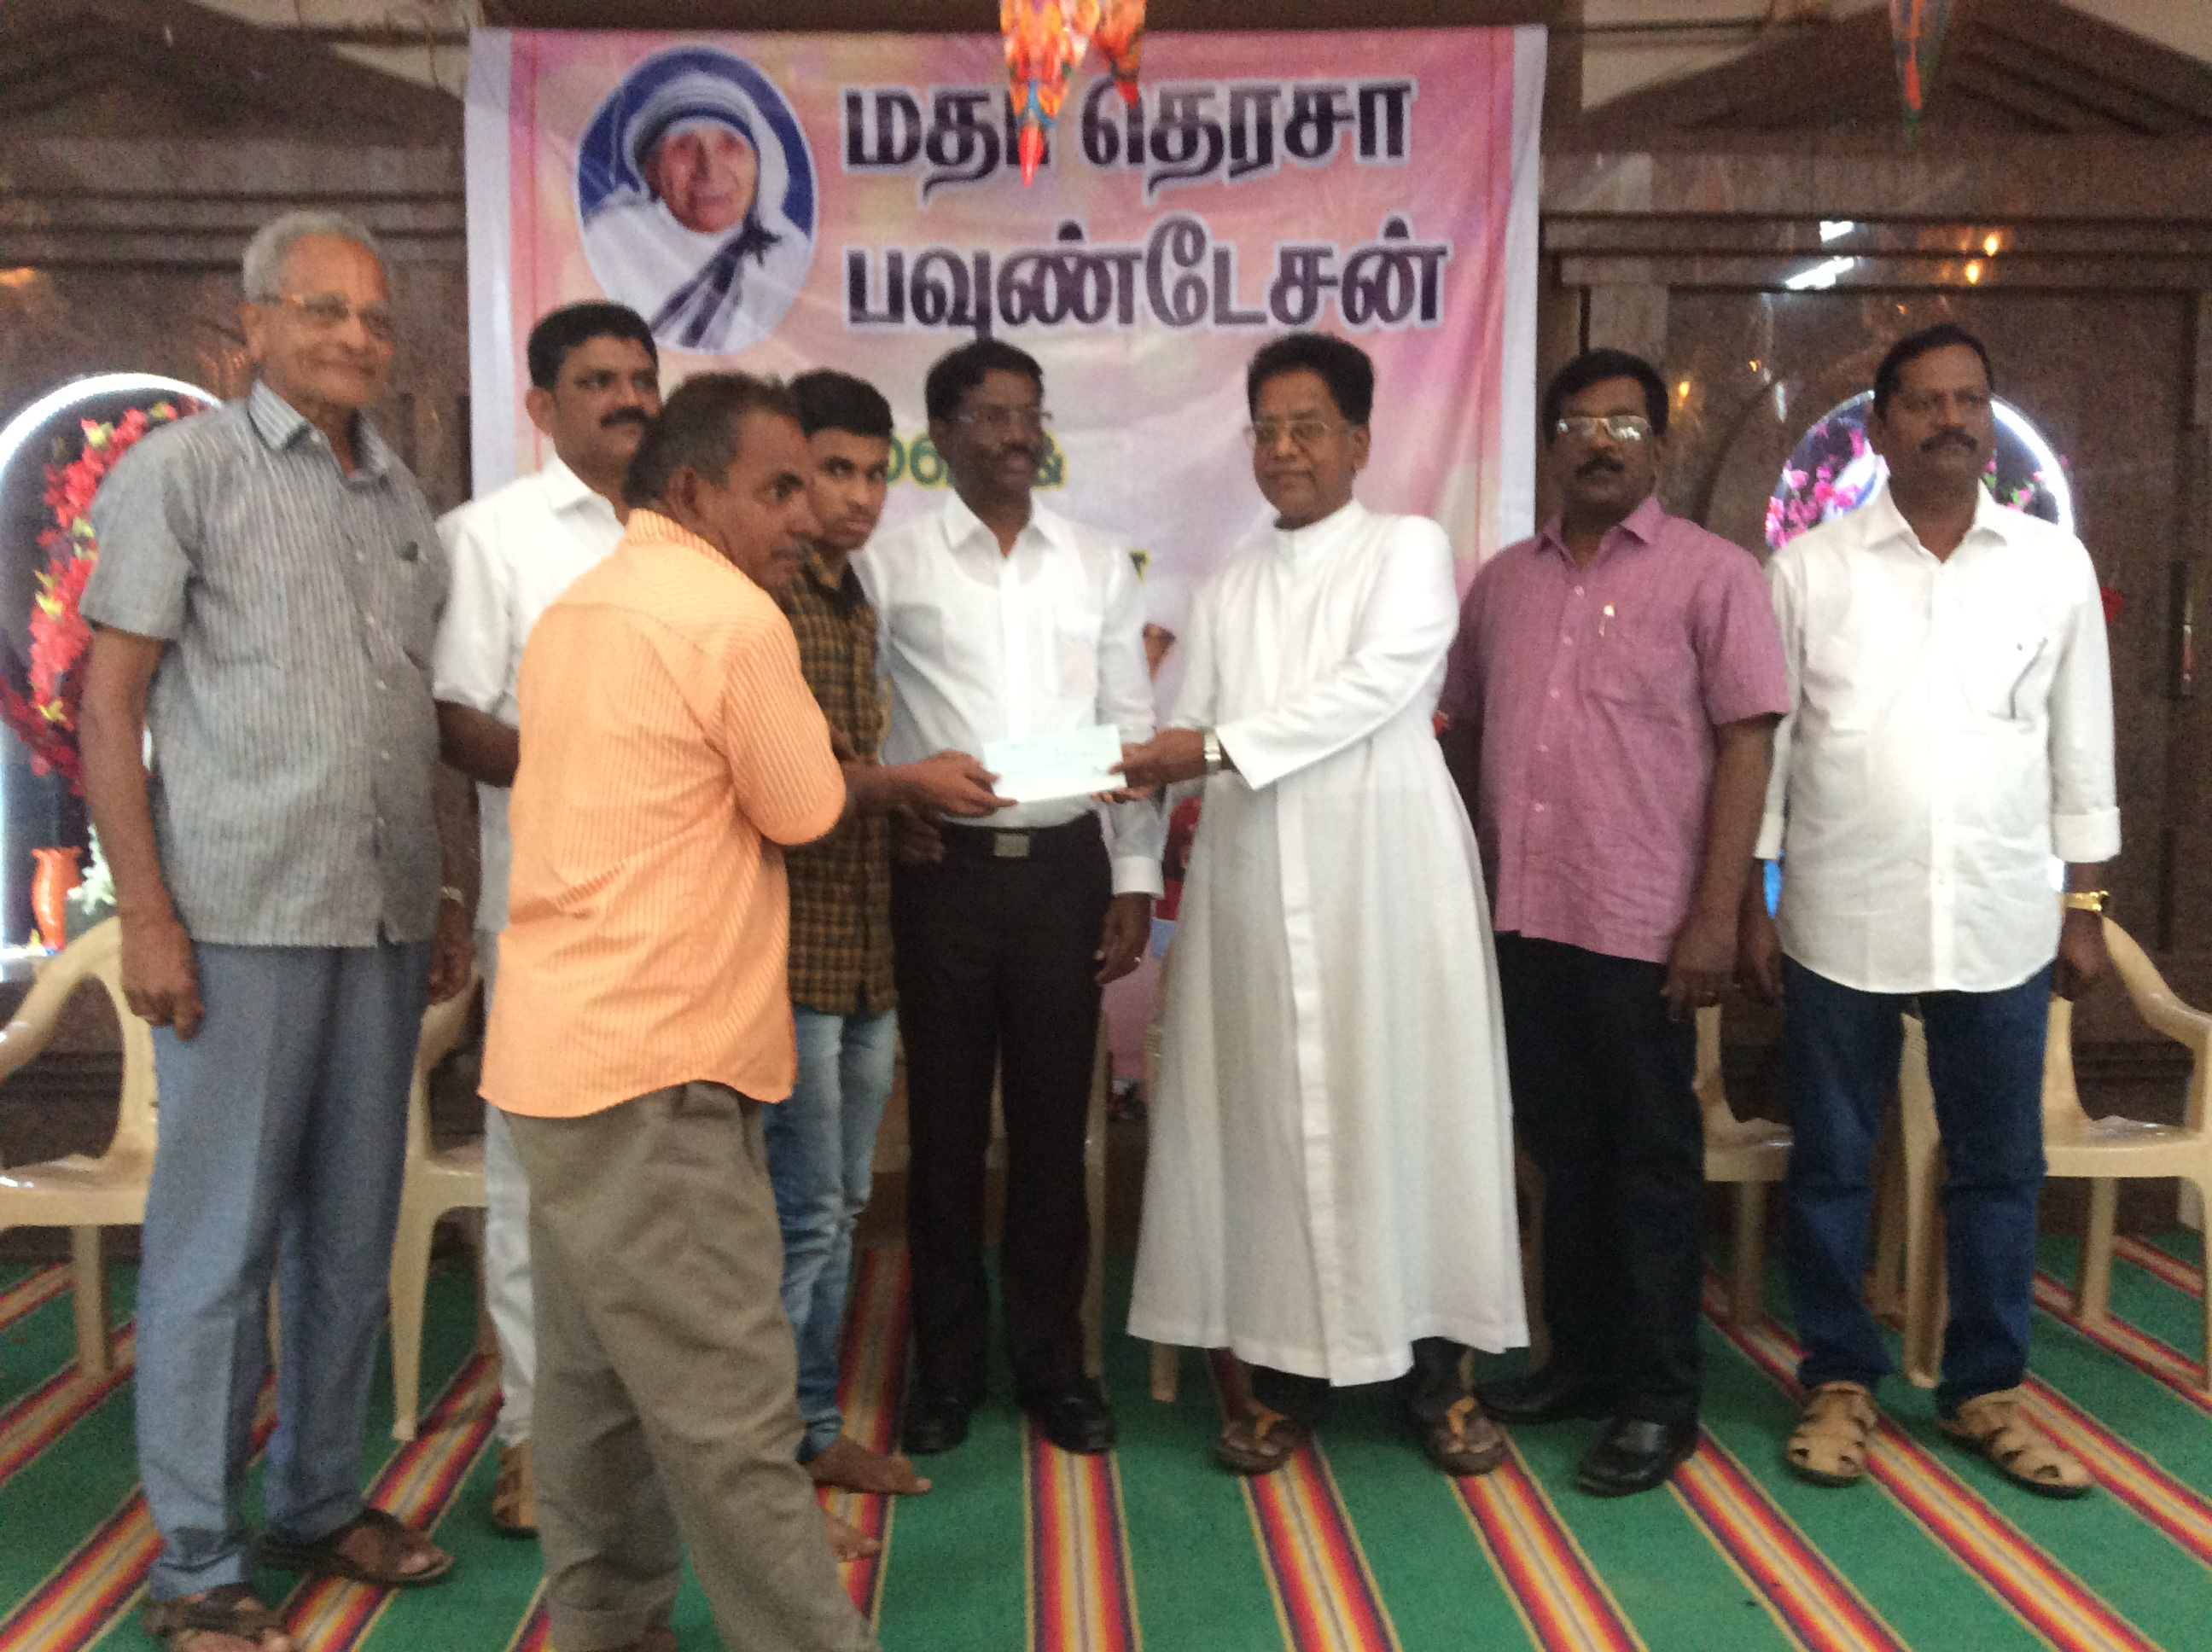 Rev. Fr. Periyanna handing over cheque to Selvan. Muthuraman on behalf of our Foundation